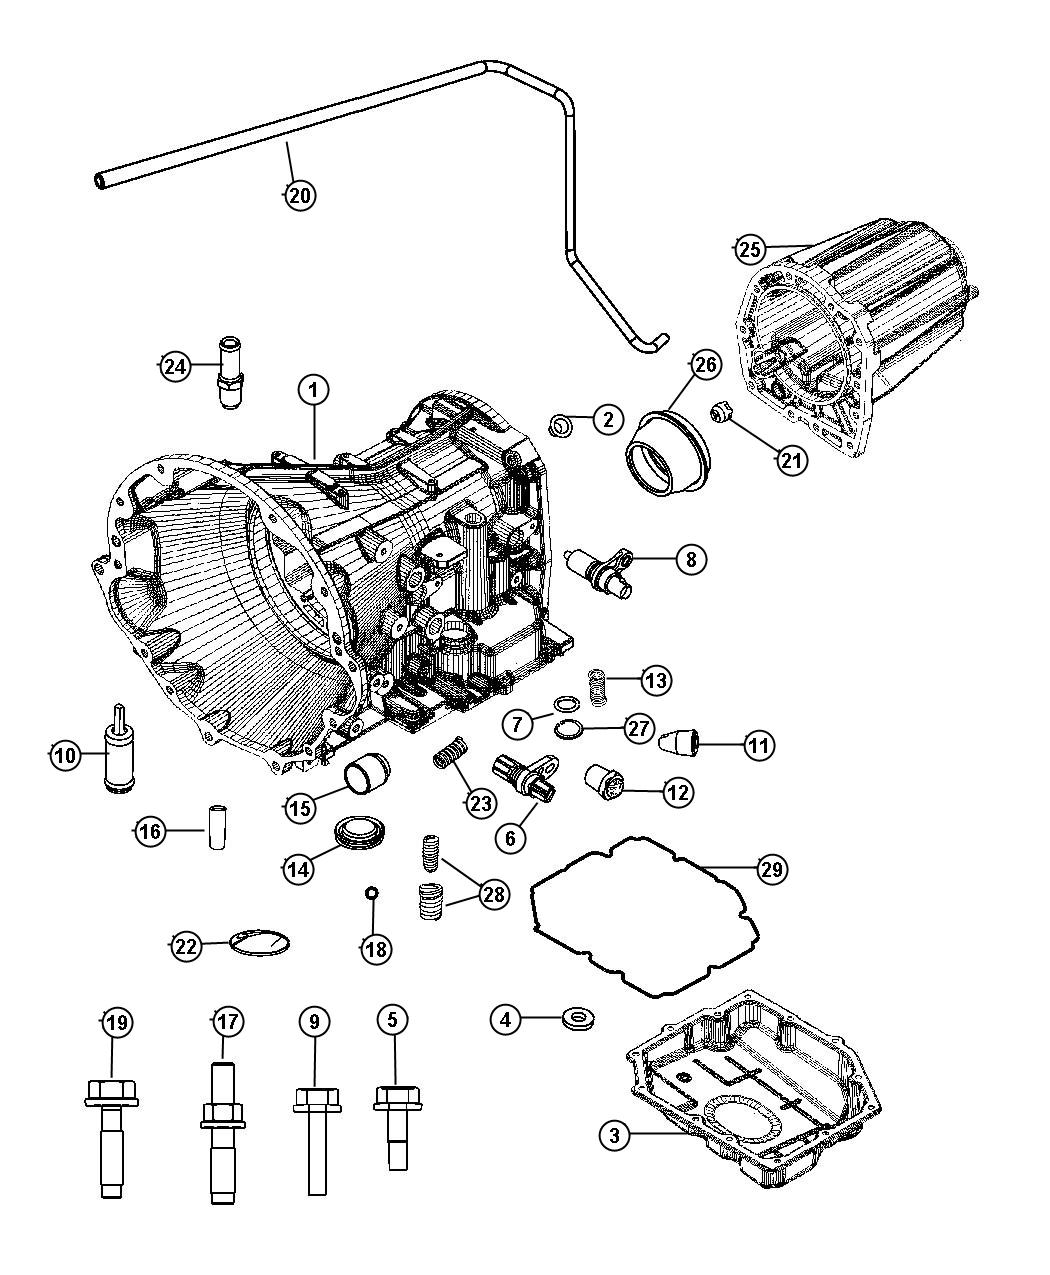 Dodge Ram 2500 Tailgate Parts Diagram on 2000 dodge ram power window fuse